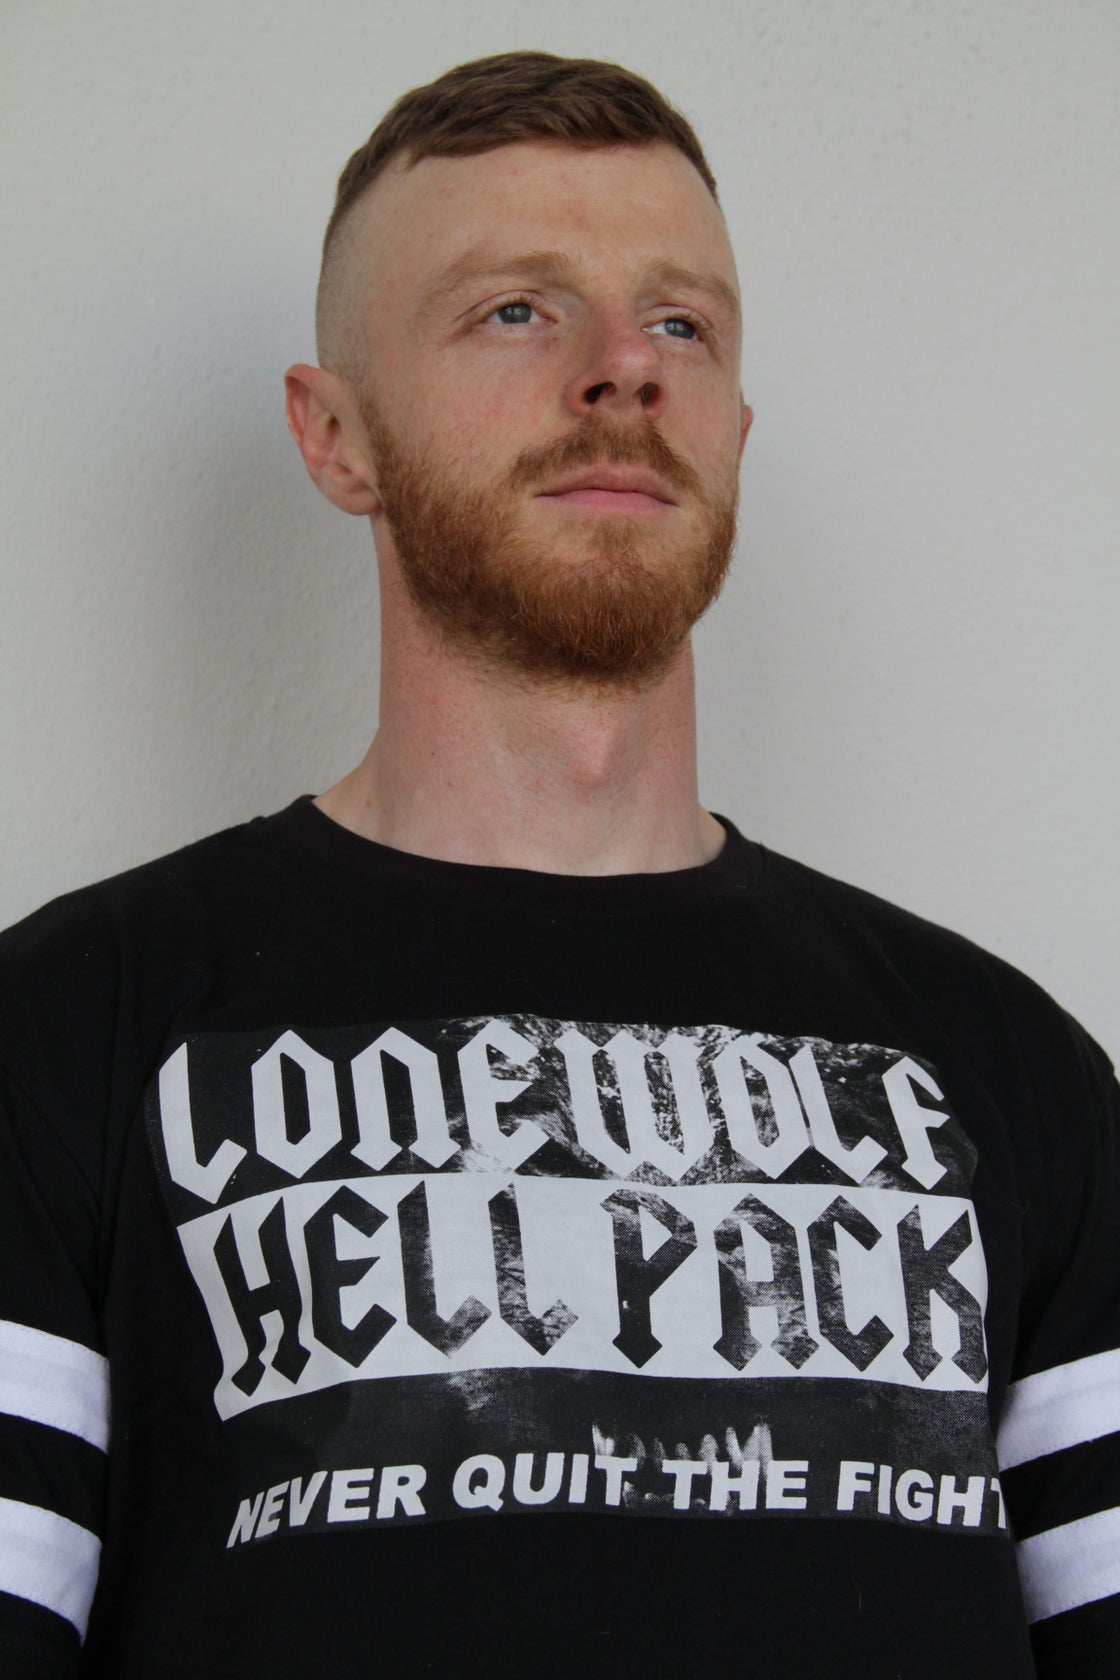 Image of LoneWolf HellPack Tee